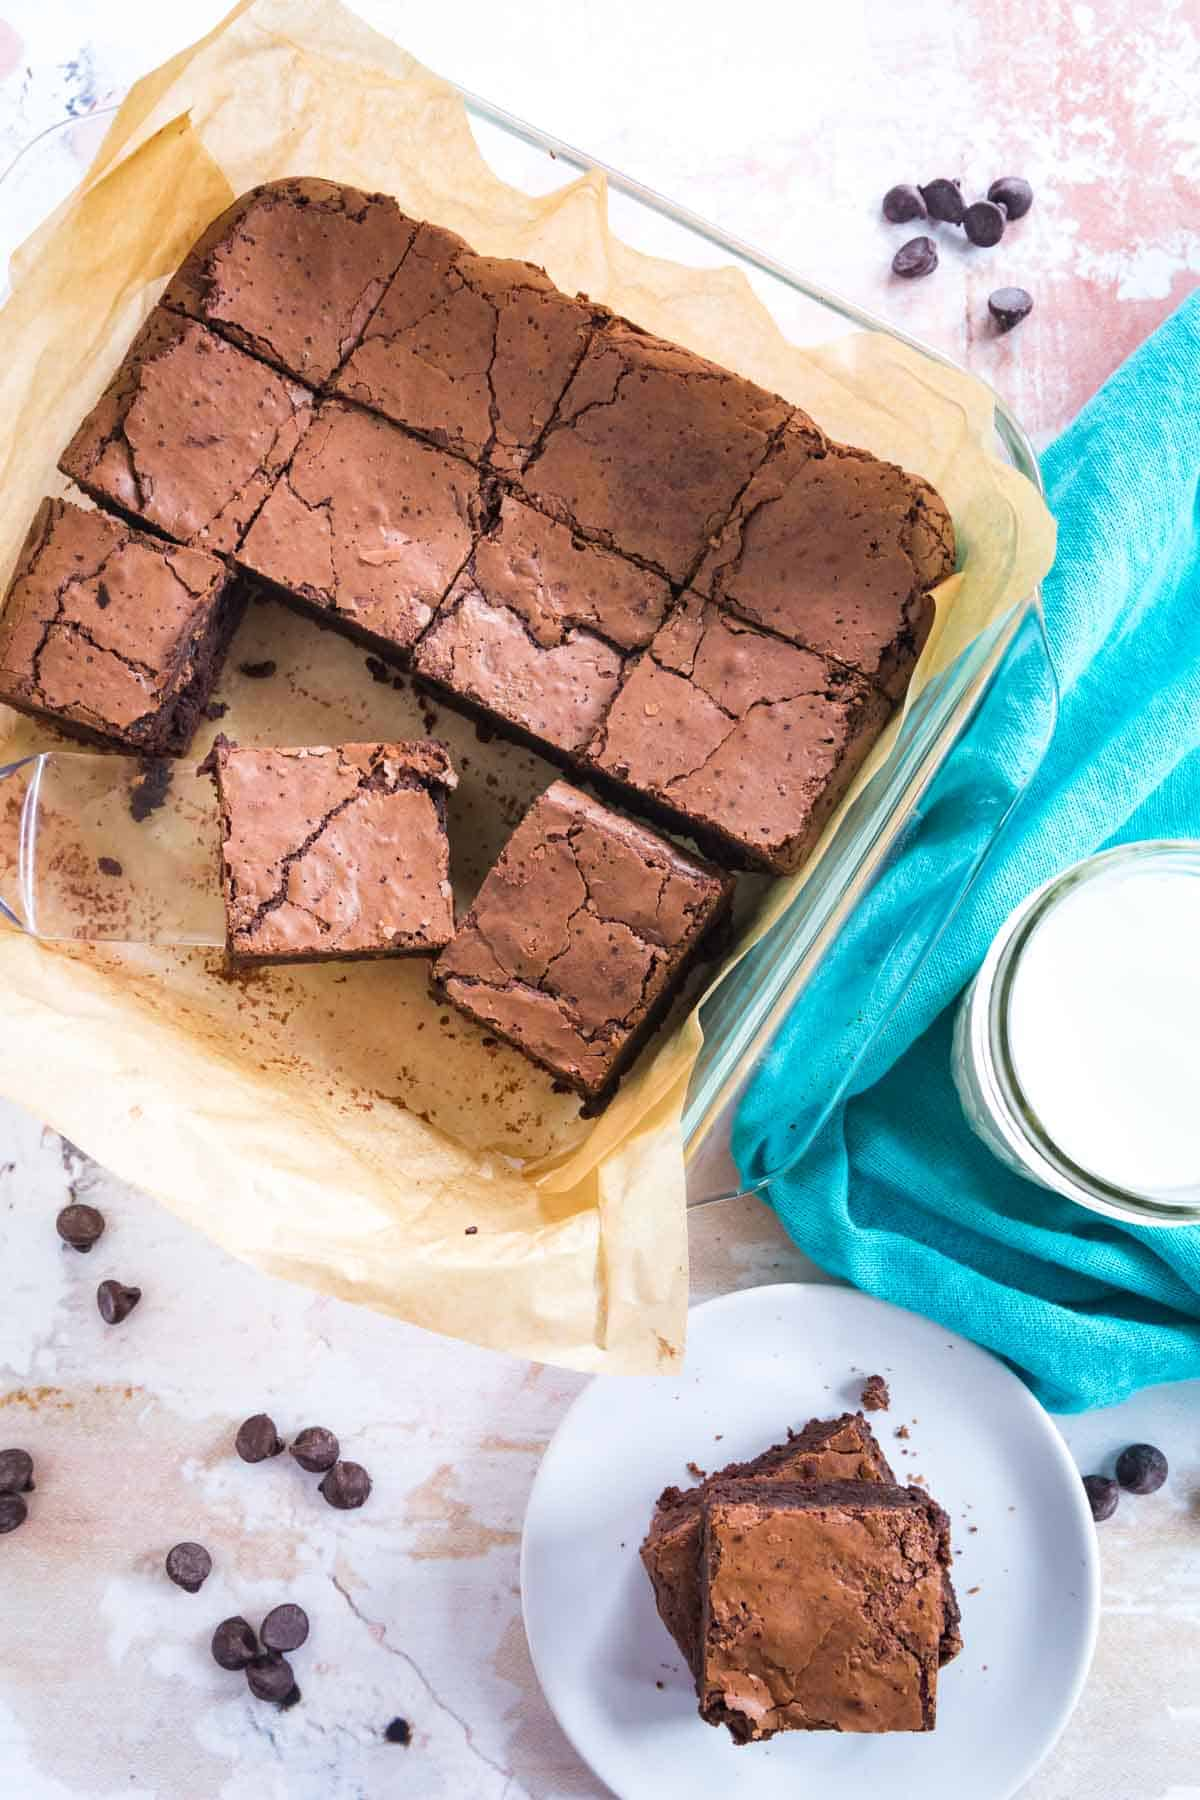 square glass baking dish with brownies in it and two of the brownies on a plate with a glass of milk